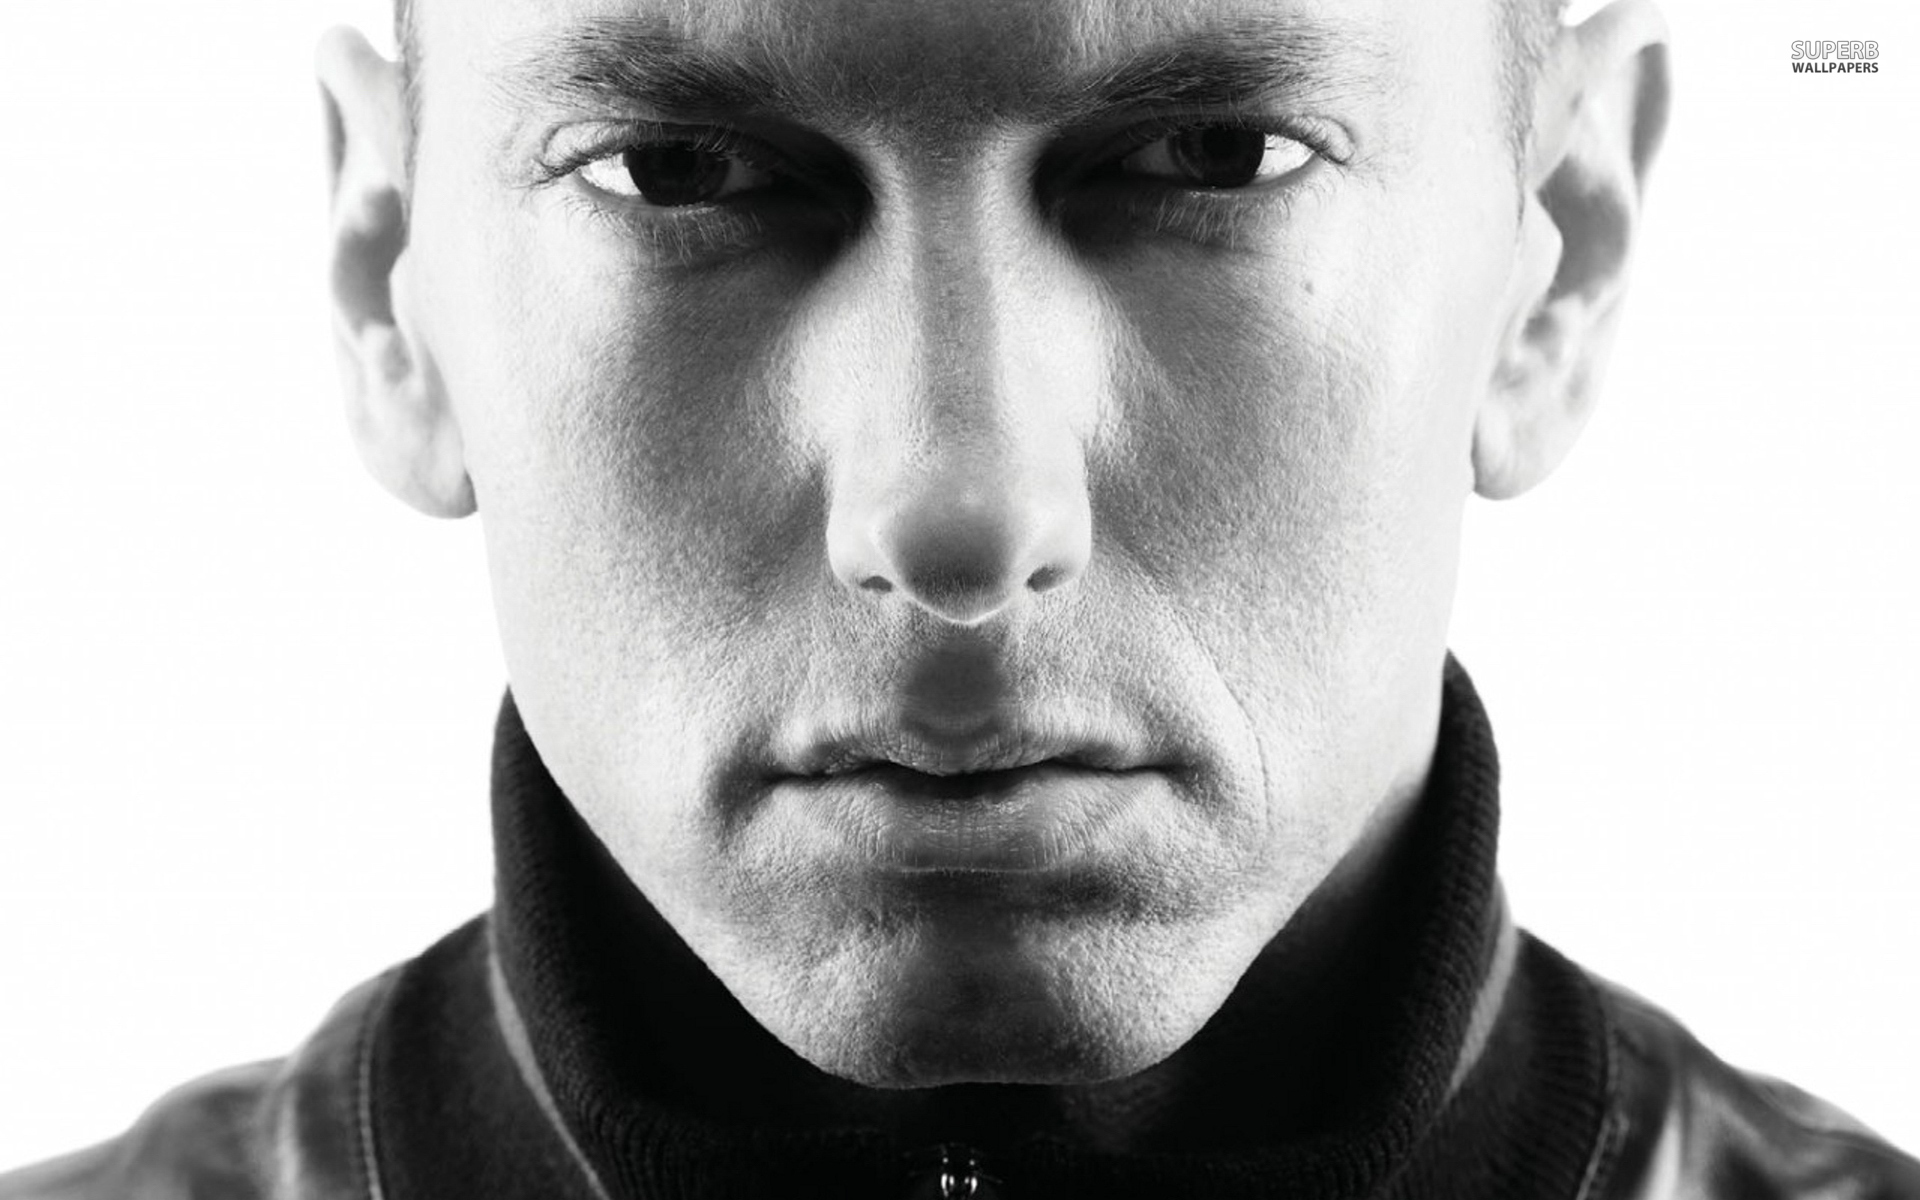 Eminem wallpaper 1920x1200 jpg